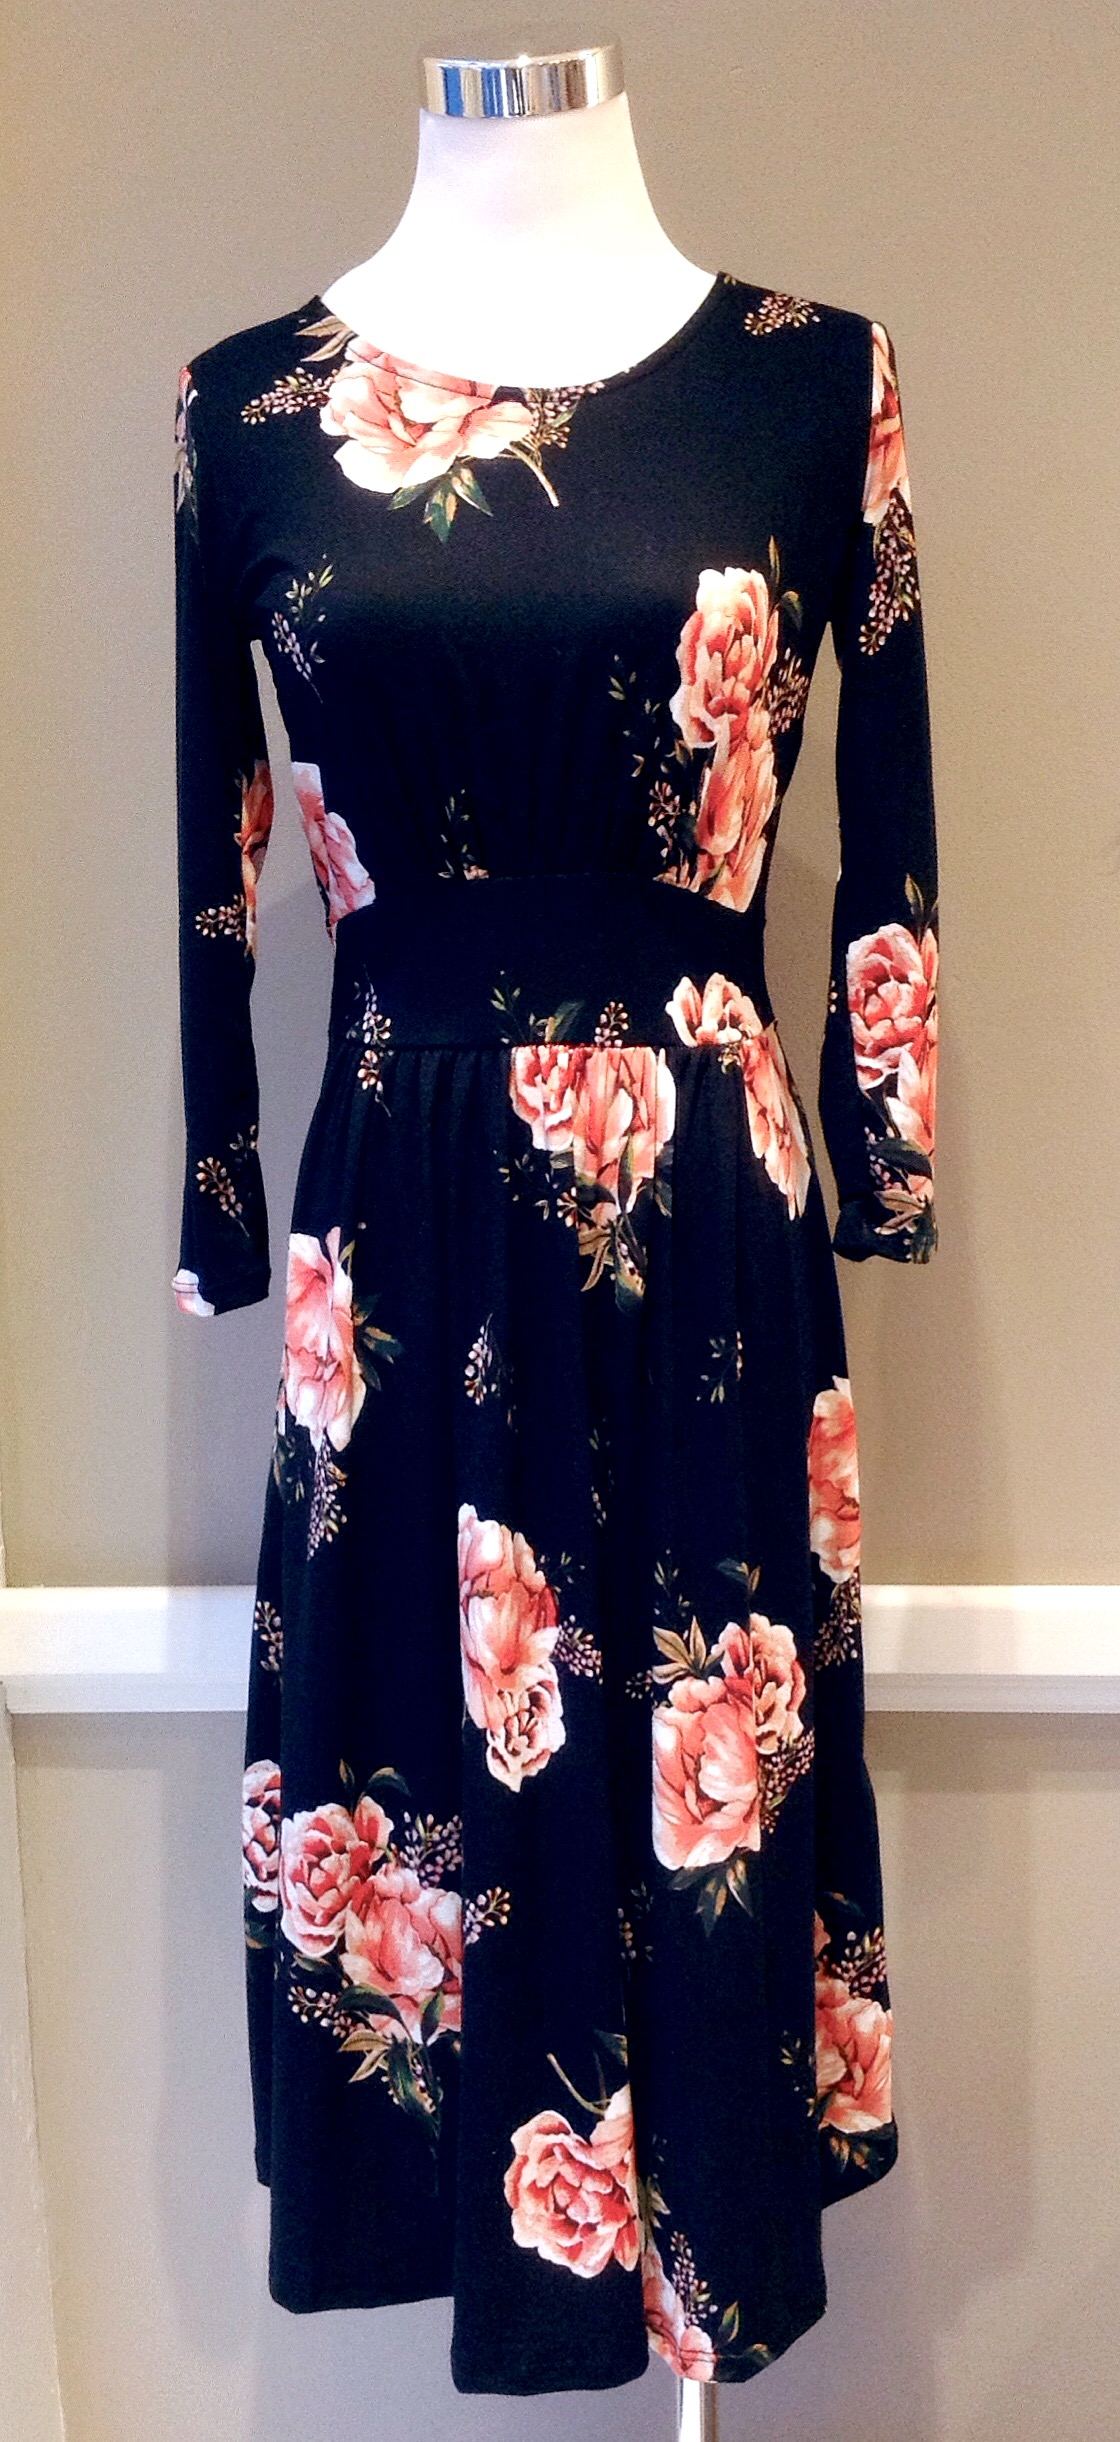 Knit midi dress with long sleeves and side pockets in black/pink floral, $38